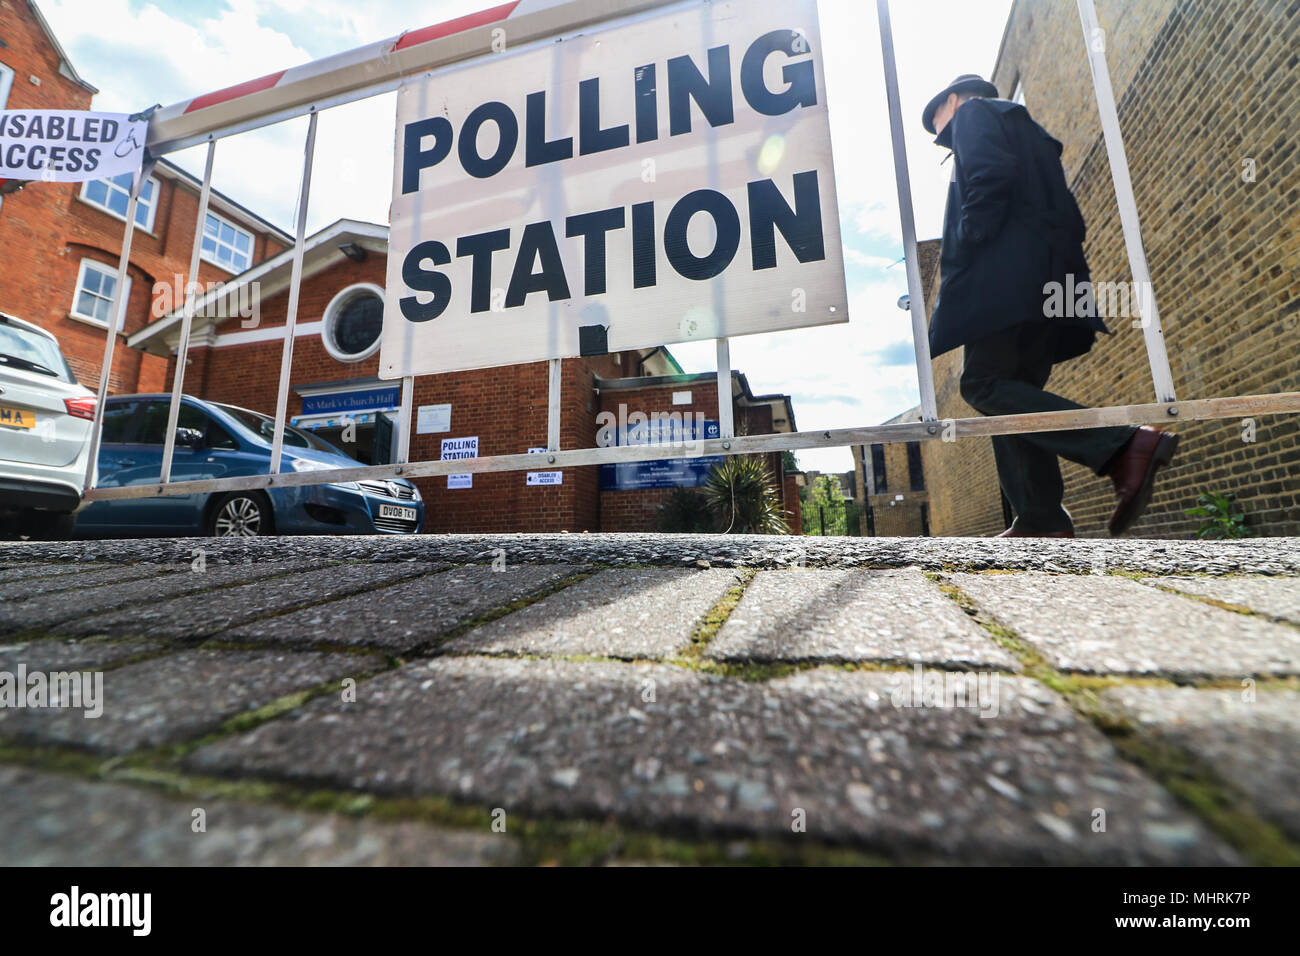 Wimbledon London UK. 3rd May 2018. Polling stations open in Wimbledon  as voters head to the polls to elect councils across  London Boroughs and cast their ballots in 156 areas across the country today, to elect  councillors and local mayors - Stock Image